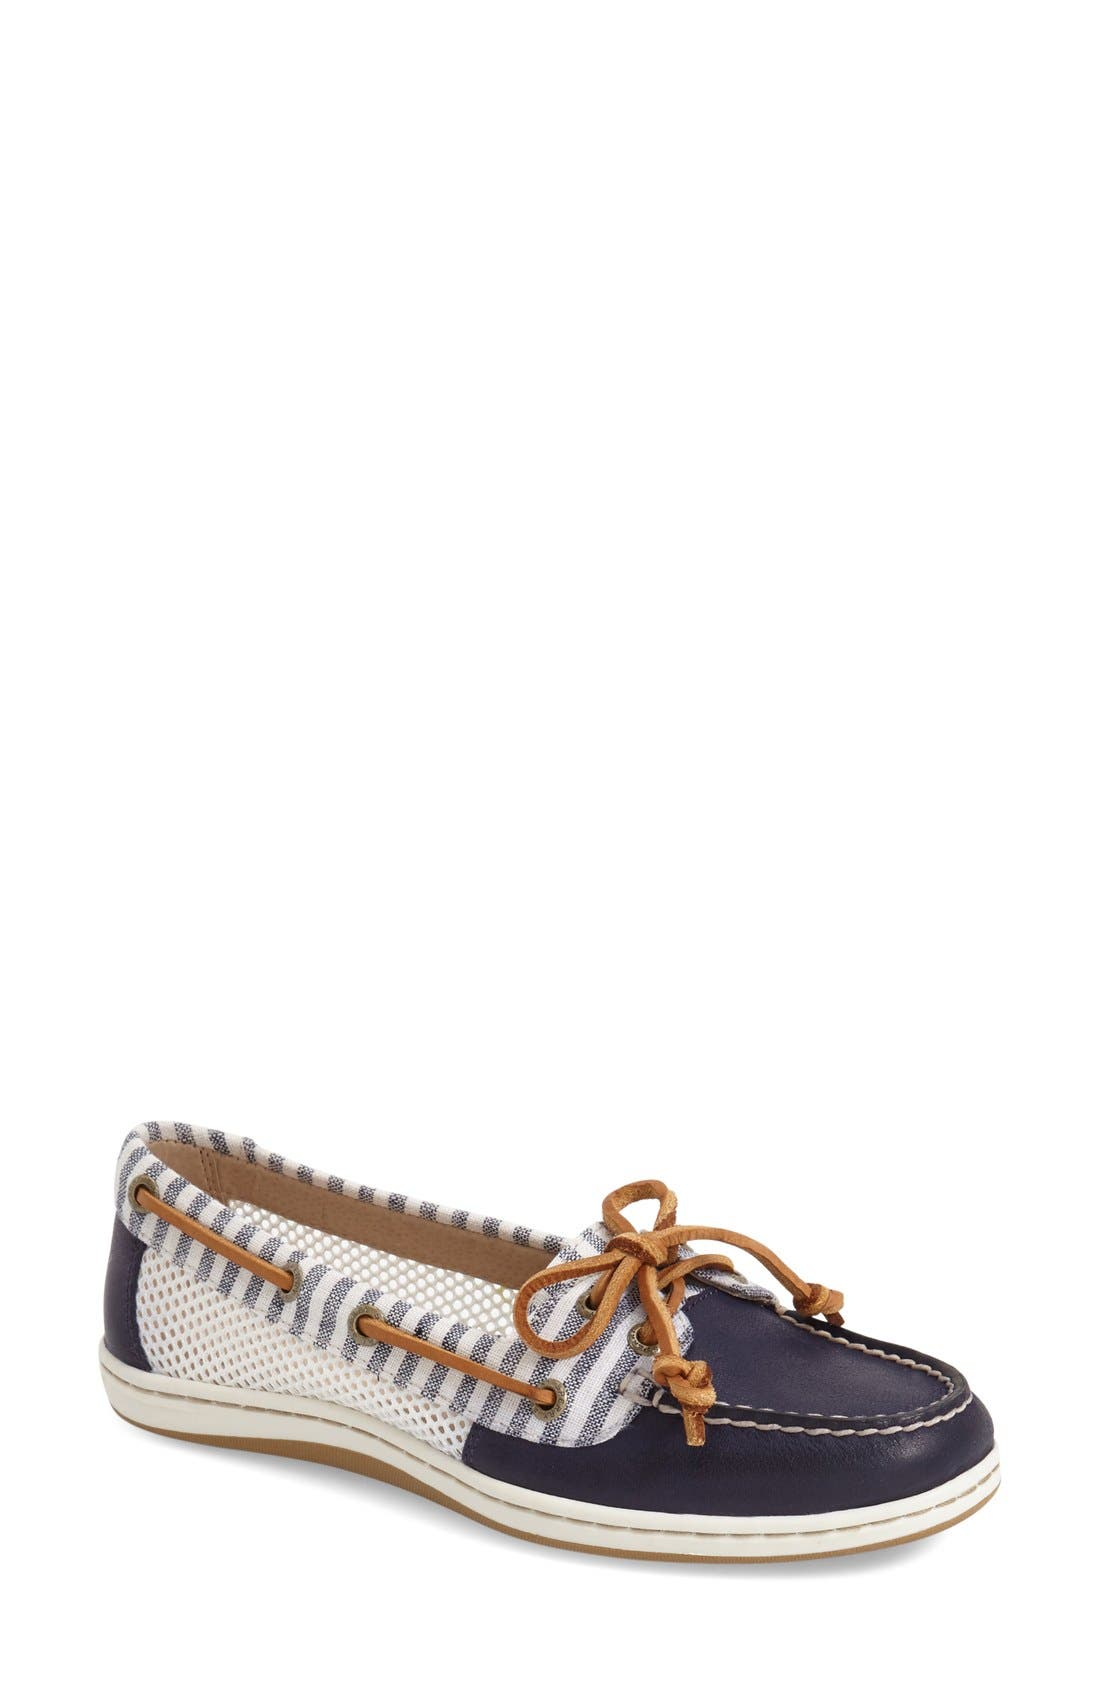 'Firefish' Boat Shoe,                             Main thumbnail 11, color,